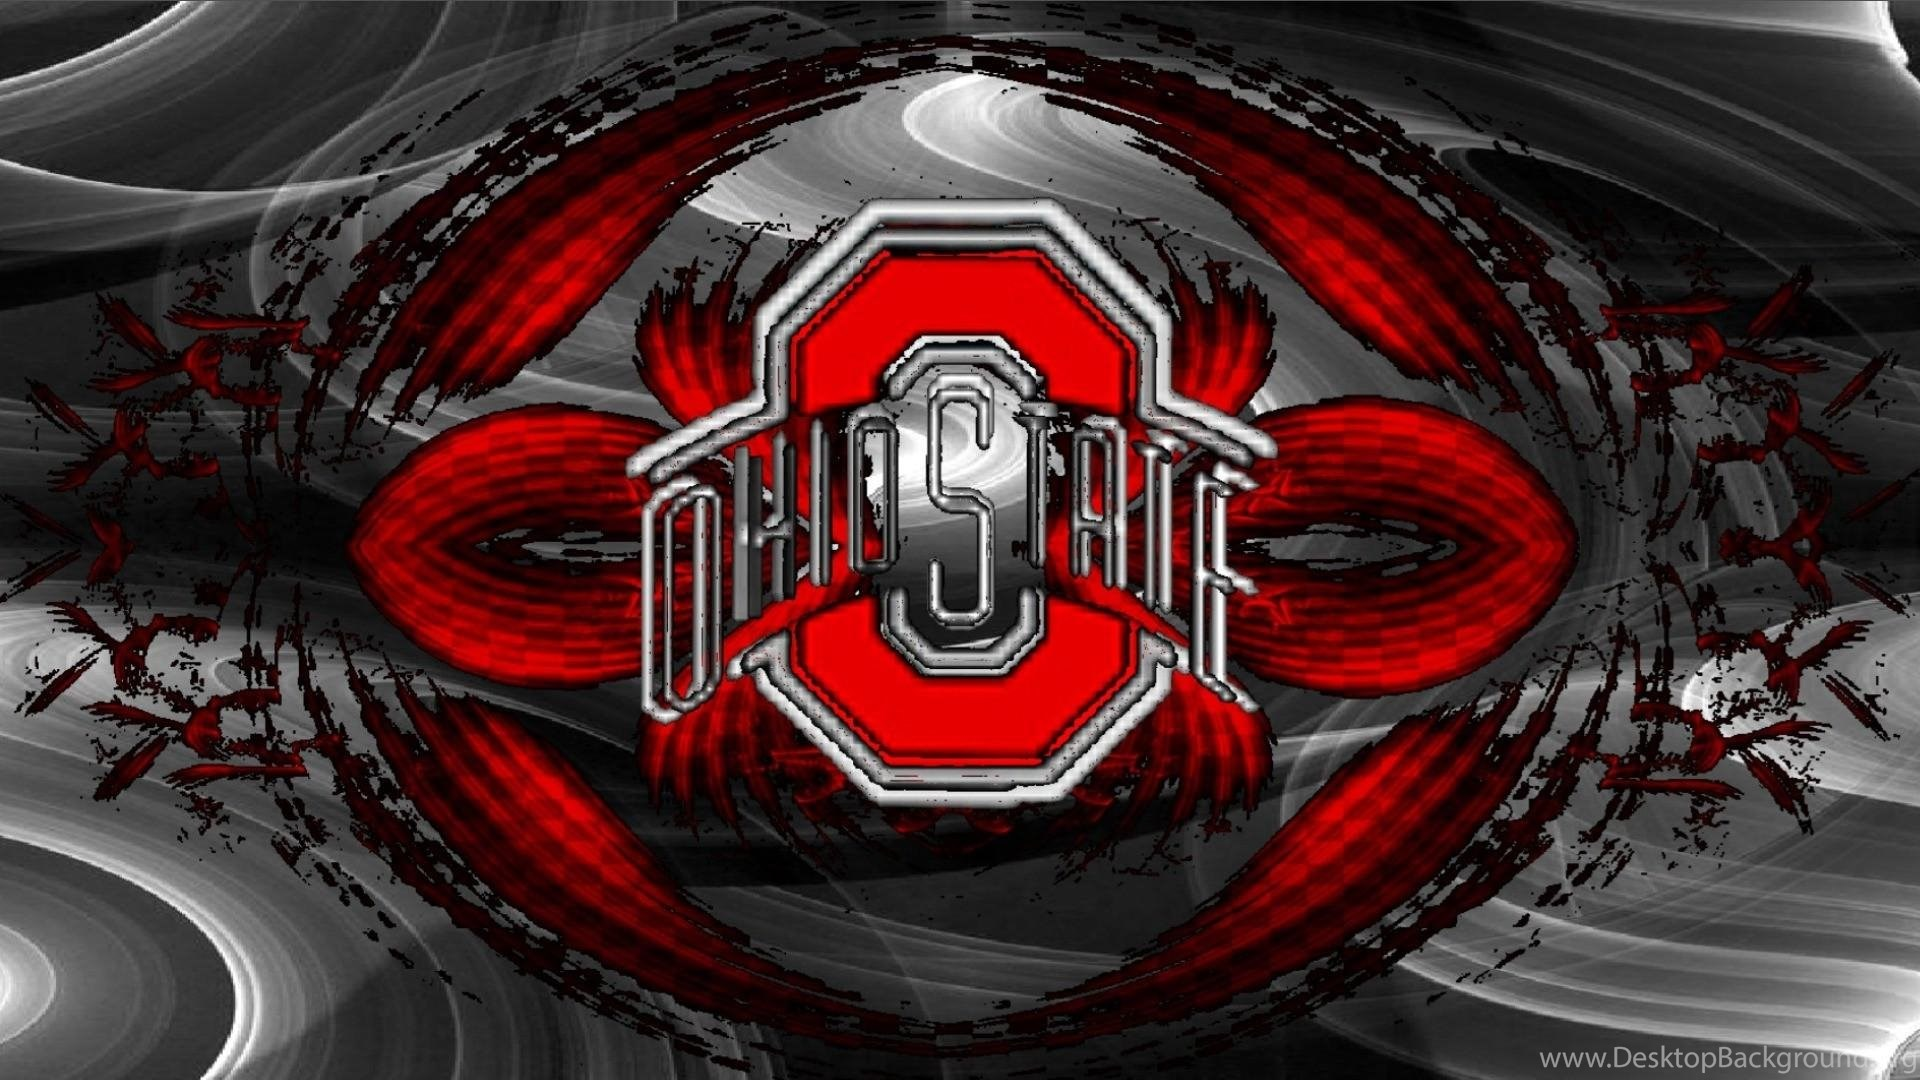 Ohio State Buckeyes Football Wallpapers Desktop Background